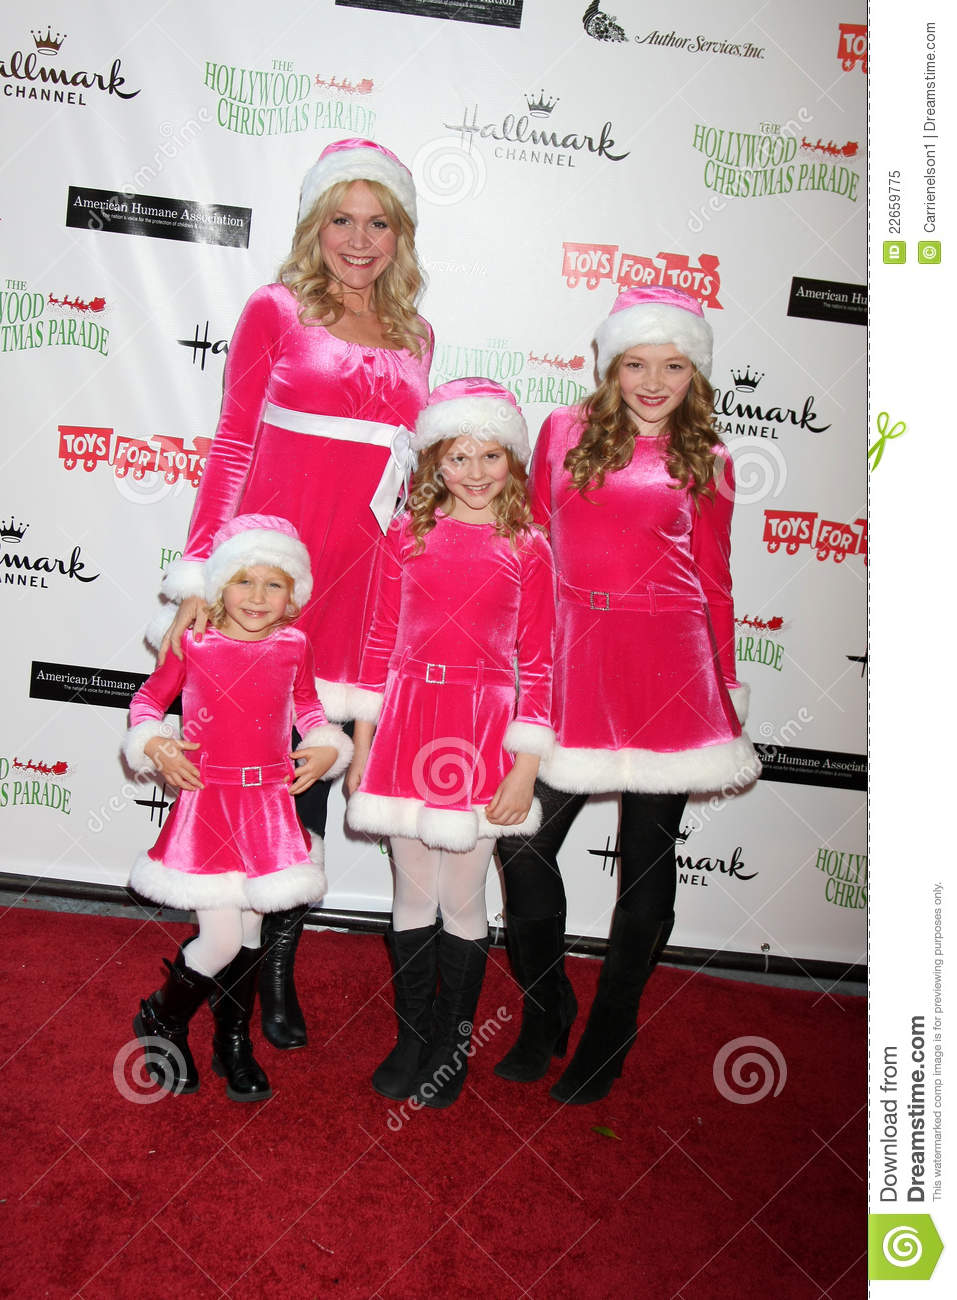 barbara alyn woods feetbarbara alyn woods one tree hill, barbara alyn woods, barbara alyn woods instagram, barbara alyn woods 2015, barbara alyn woods desperate housewives, barbara alyn woods and john lind, barbara alyn woods imdb, barbara alyn woods the goldbergs, barbara alyn woods feet